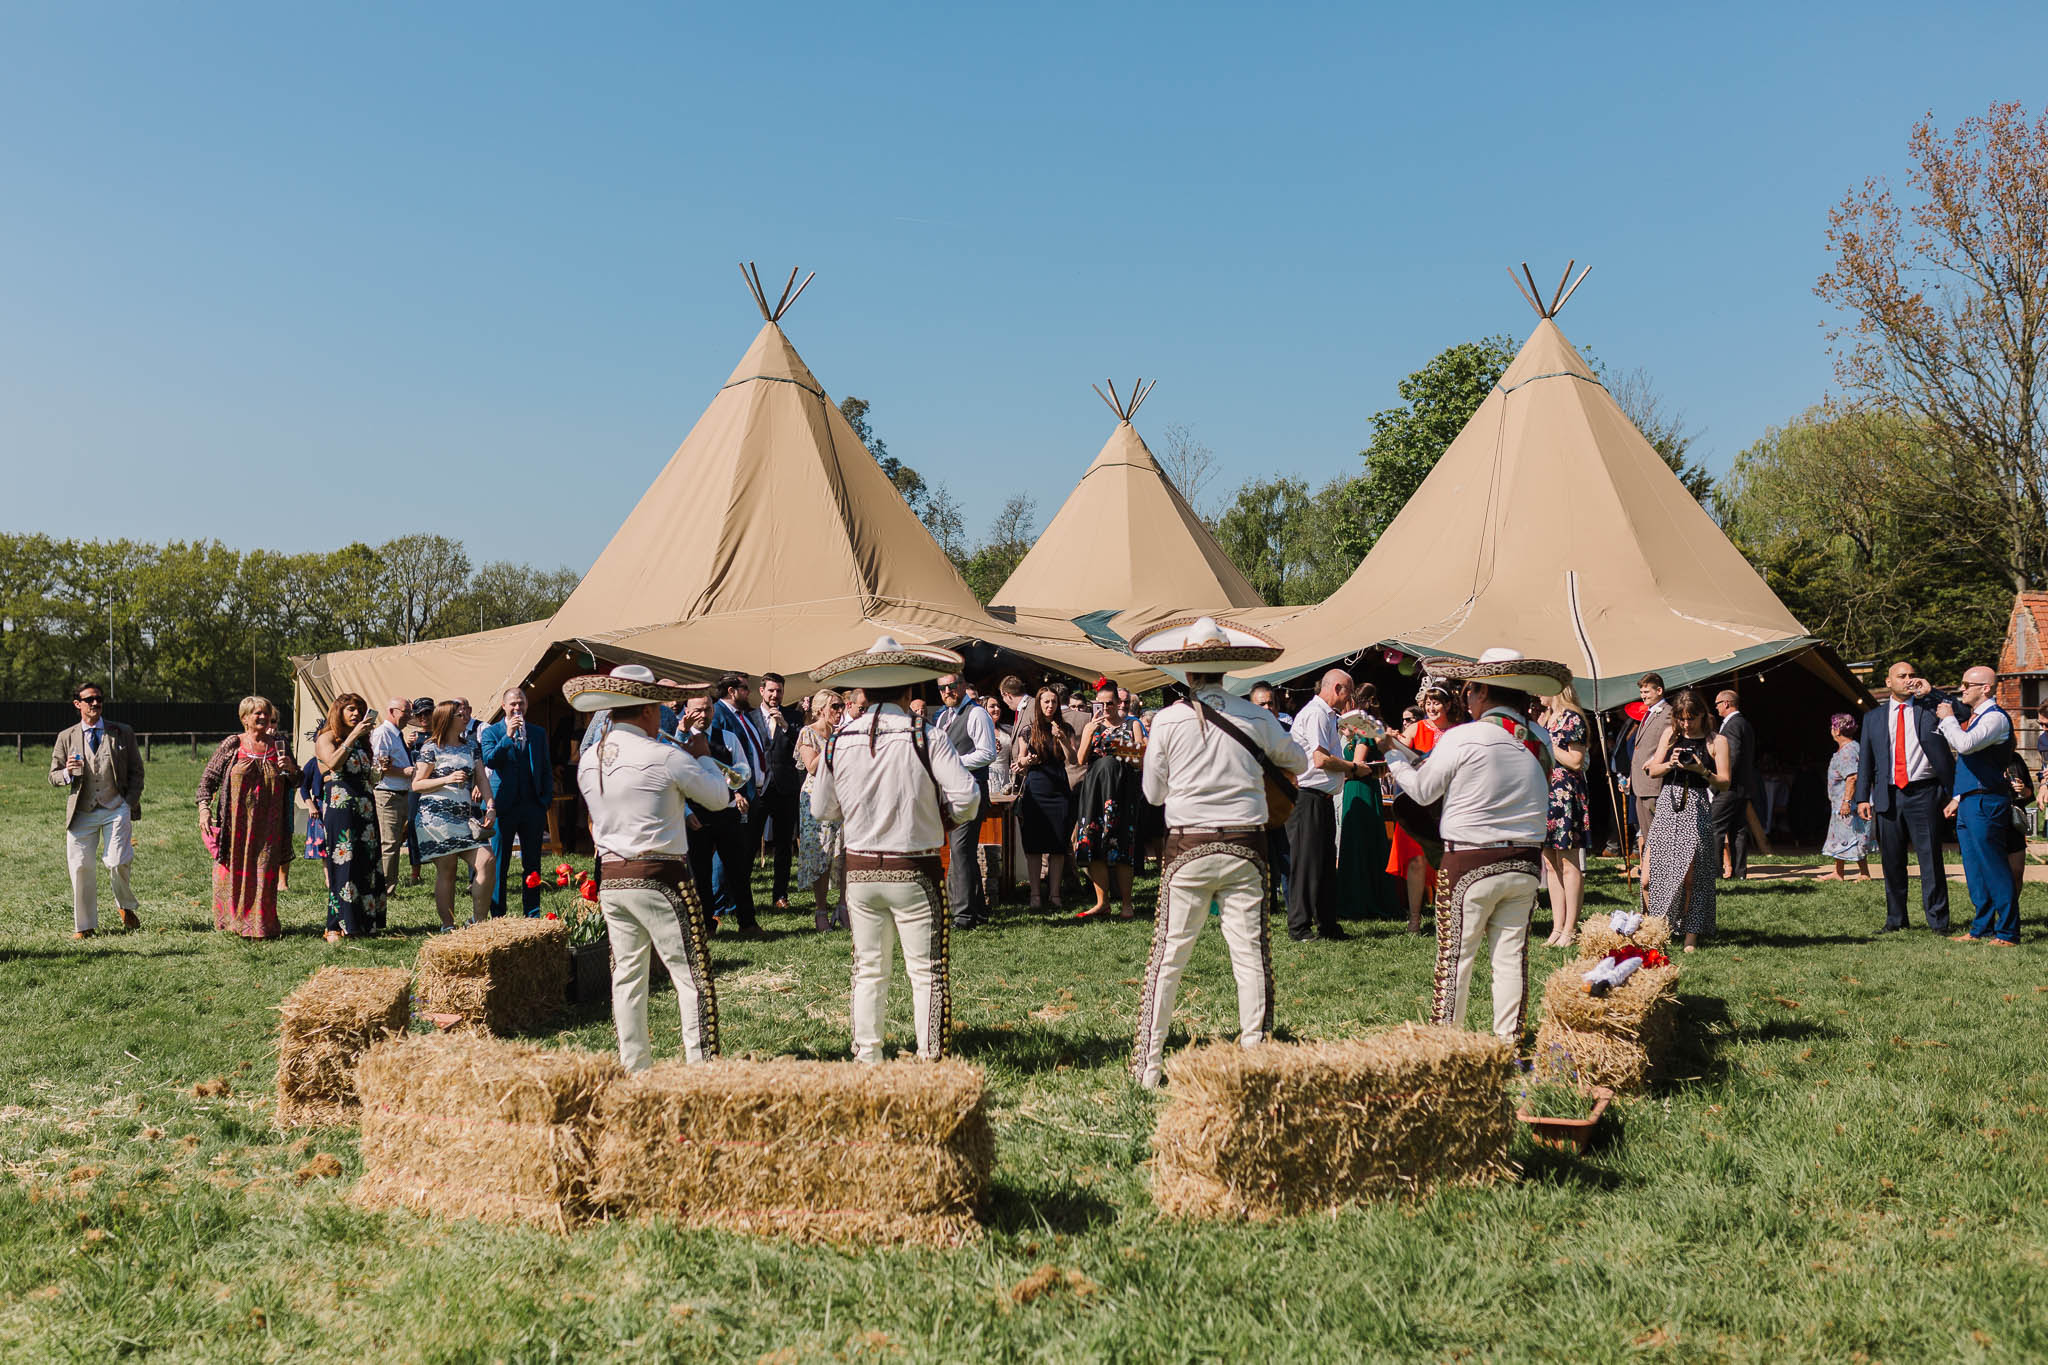 mariachi band at festival style tipi wedding